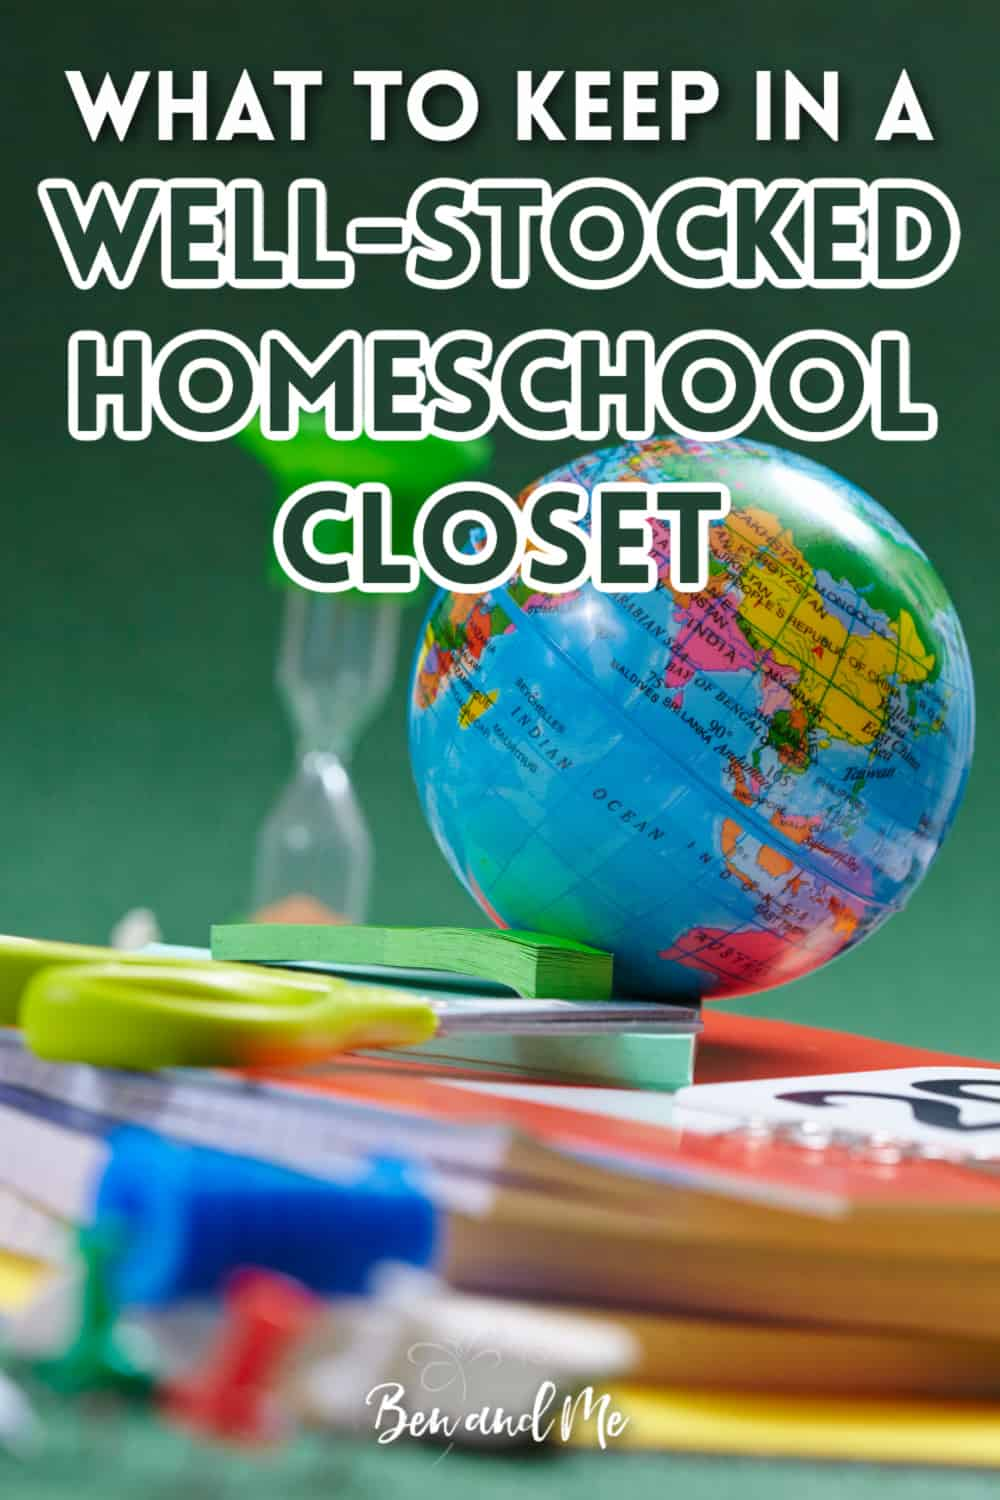 Be ready for anything your child finds interestingly by keeping a well-stocked homeschool closet. Includes ideas for science, math, geography, nature study, games, and crafts! #homeschool #homeschoolsupplies #homeschoolcrafts #homeschoolroom